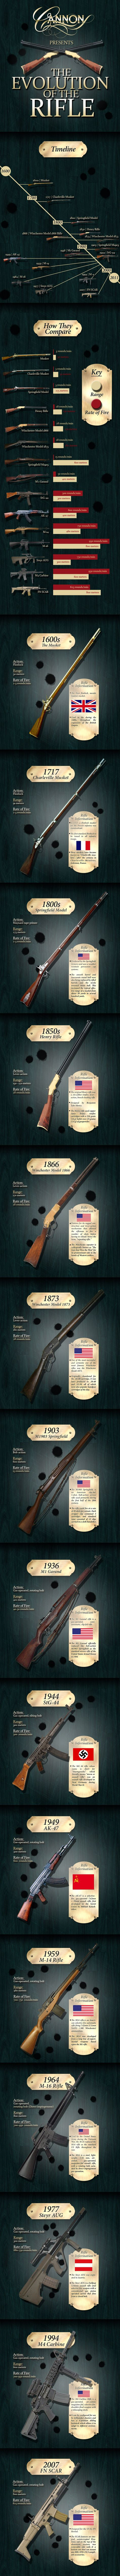 Evolution of the Rifle by Cannon : They left a whole world full of great and valuable guns that made up our weapon history but I guess you just get what you get...